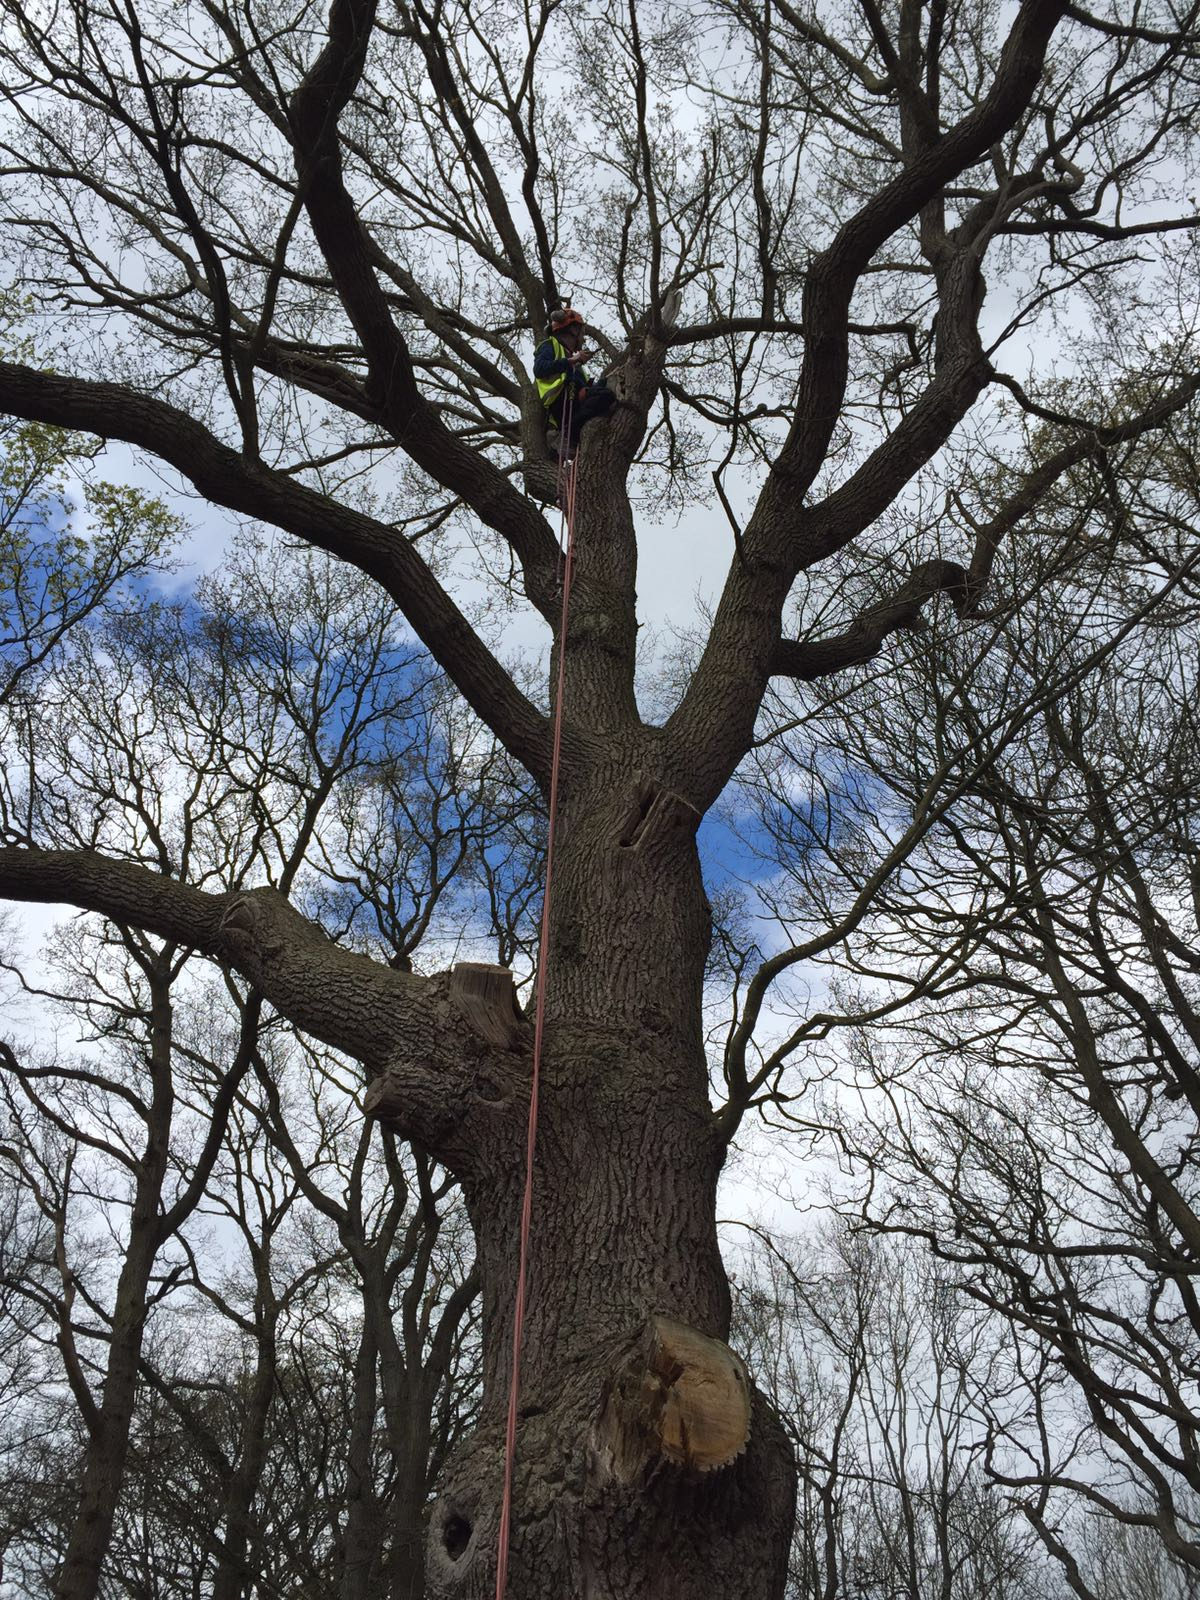 Bat survey - tree survey